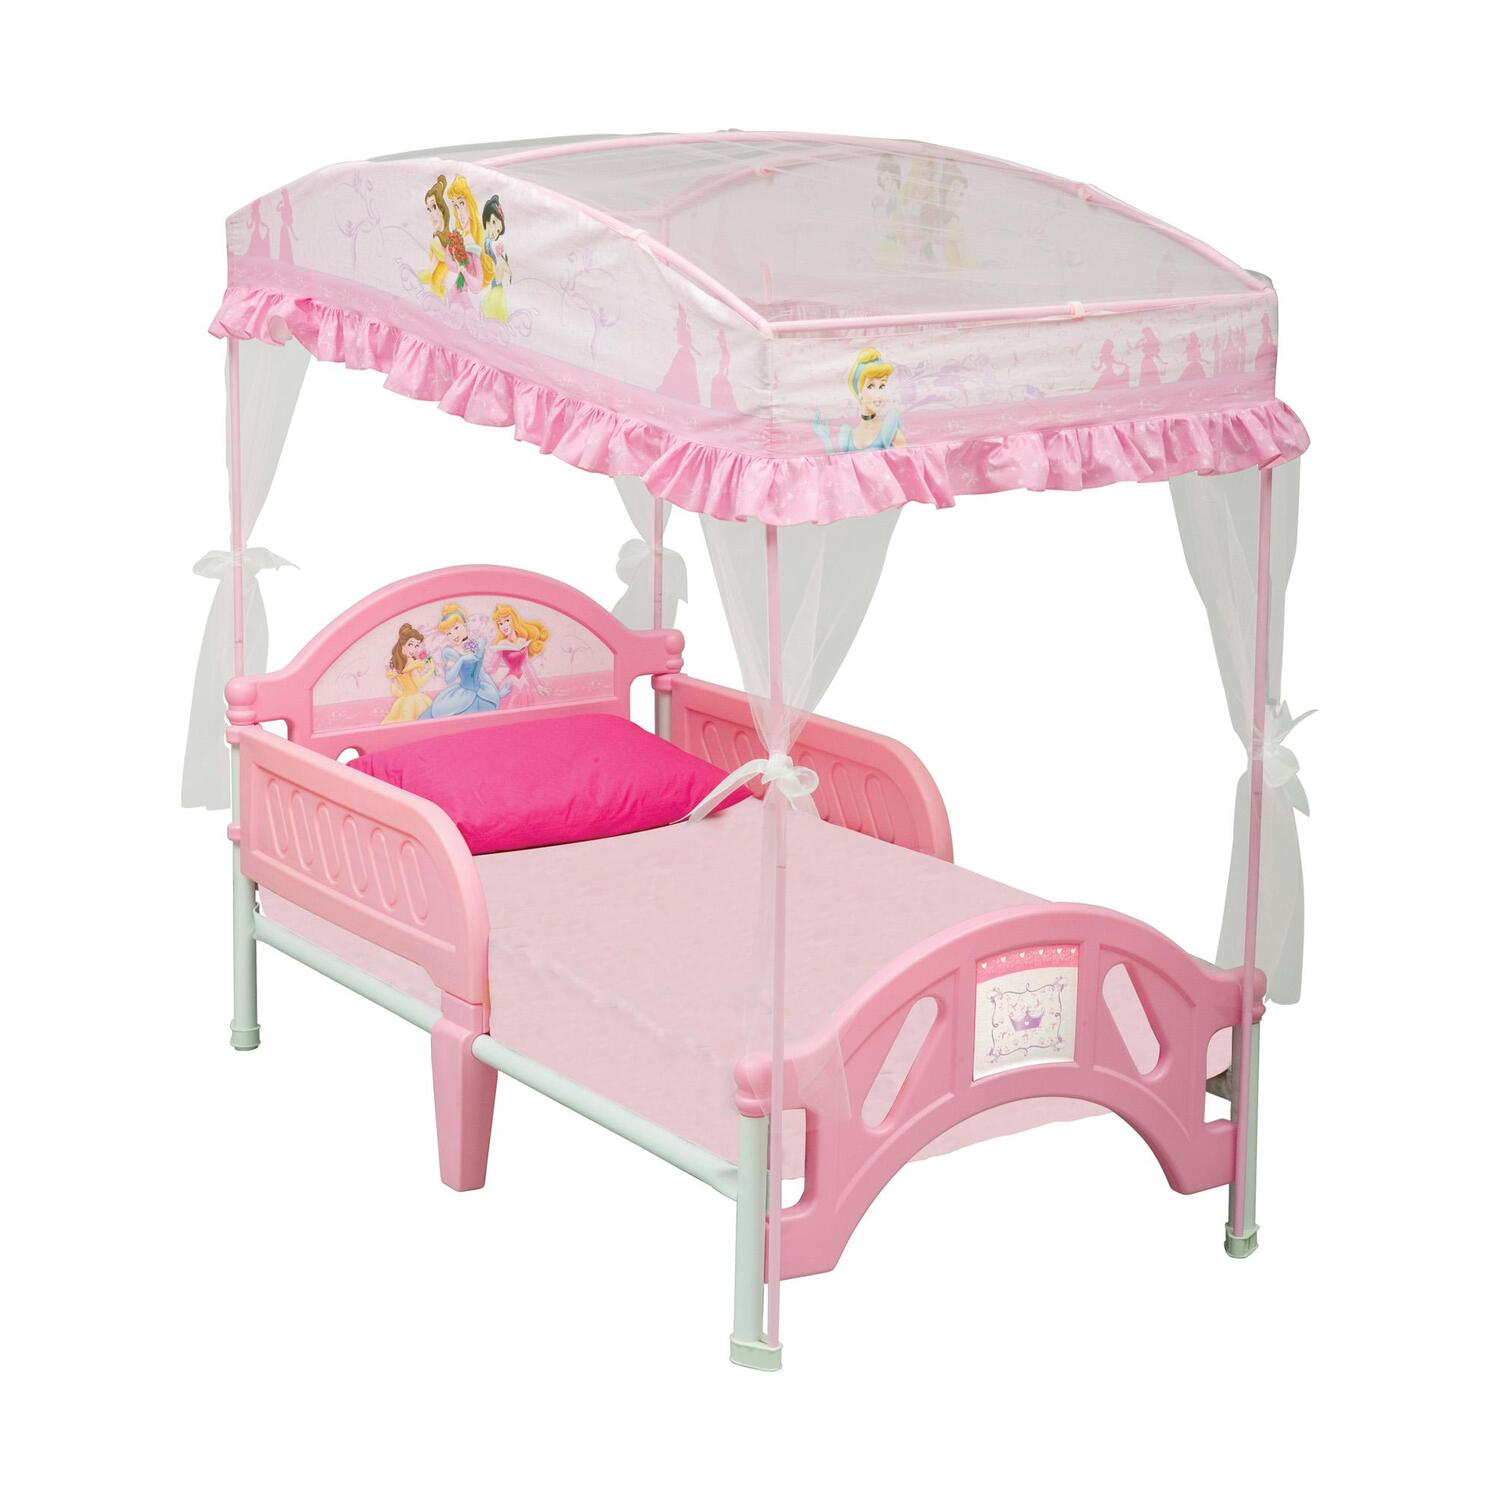 DISNEY Disney Princess Toddler Bed With Canopy By OJ